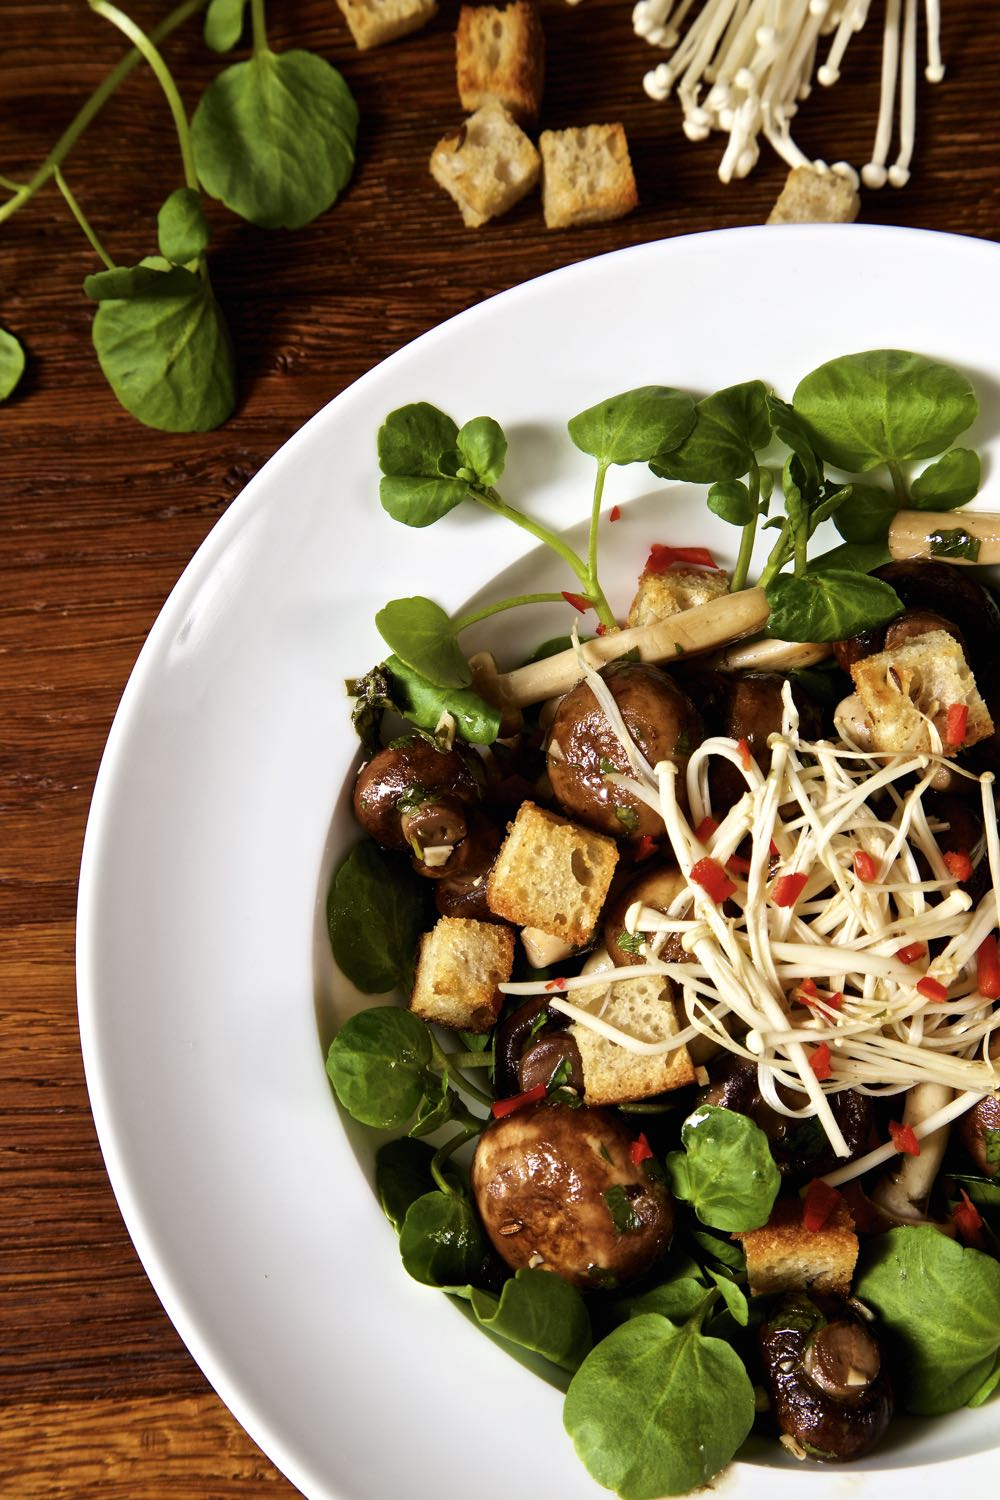 Marinated Mushrooms with cumin croutons and watercress - a lovely marinated mushroom salad